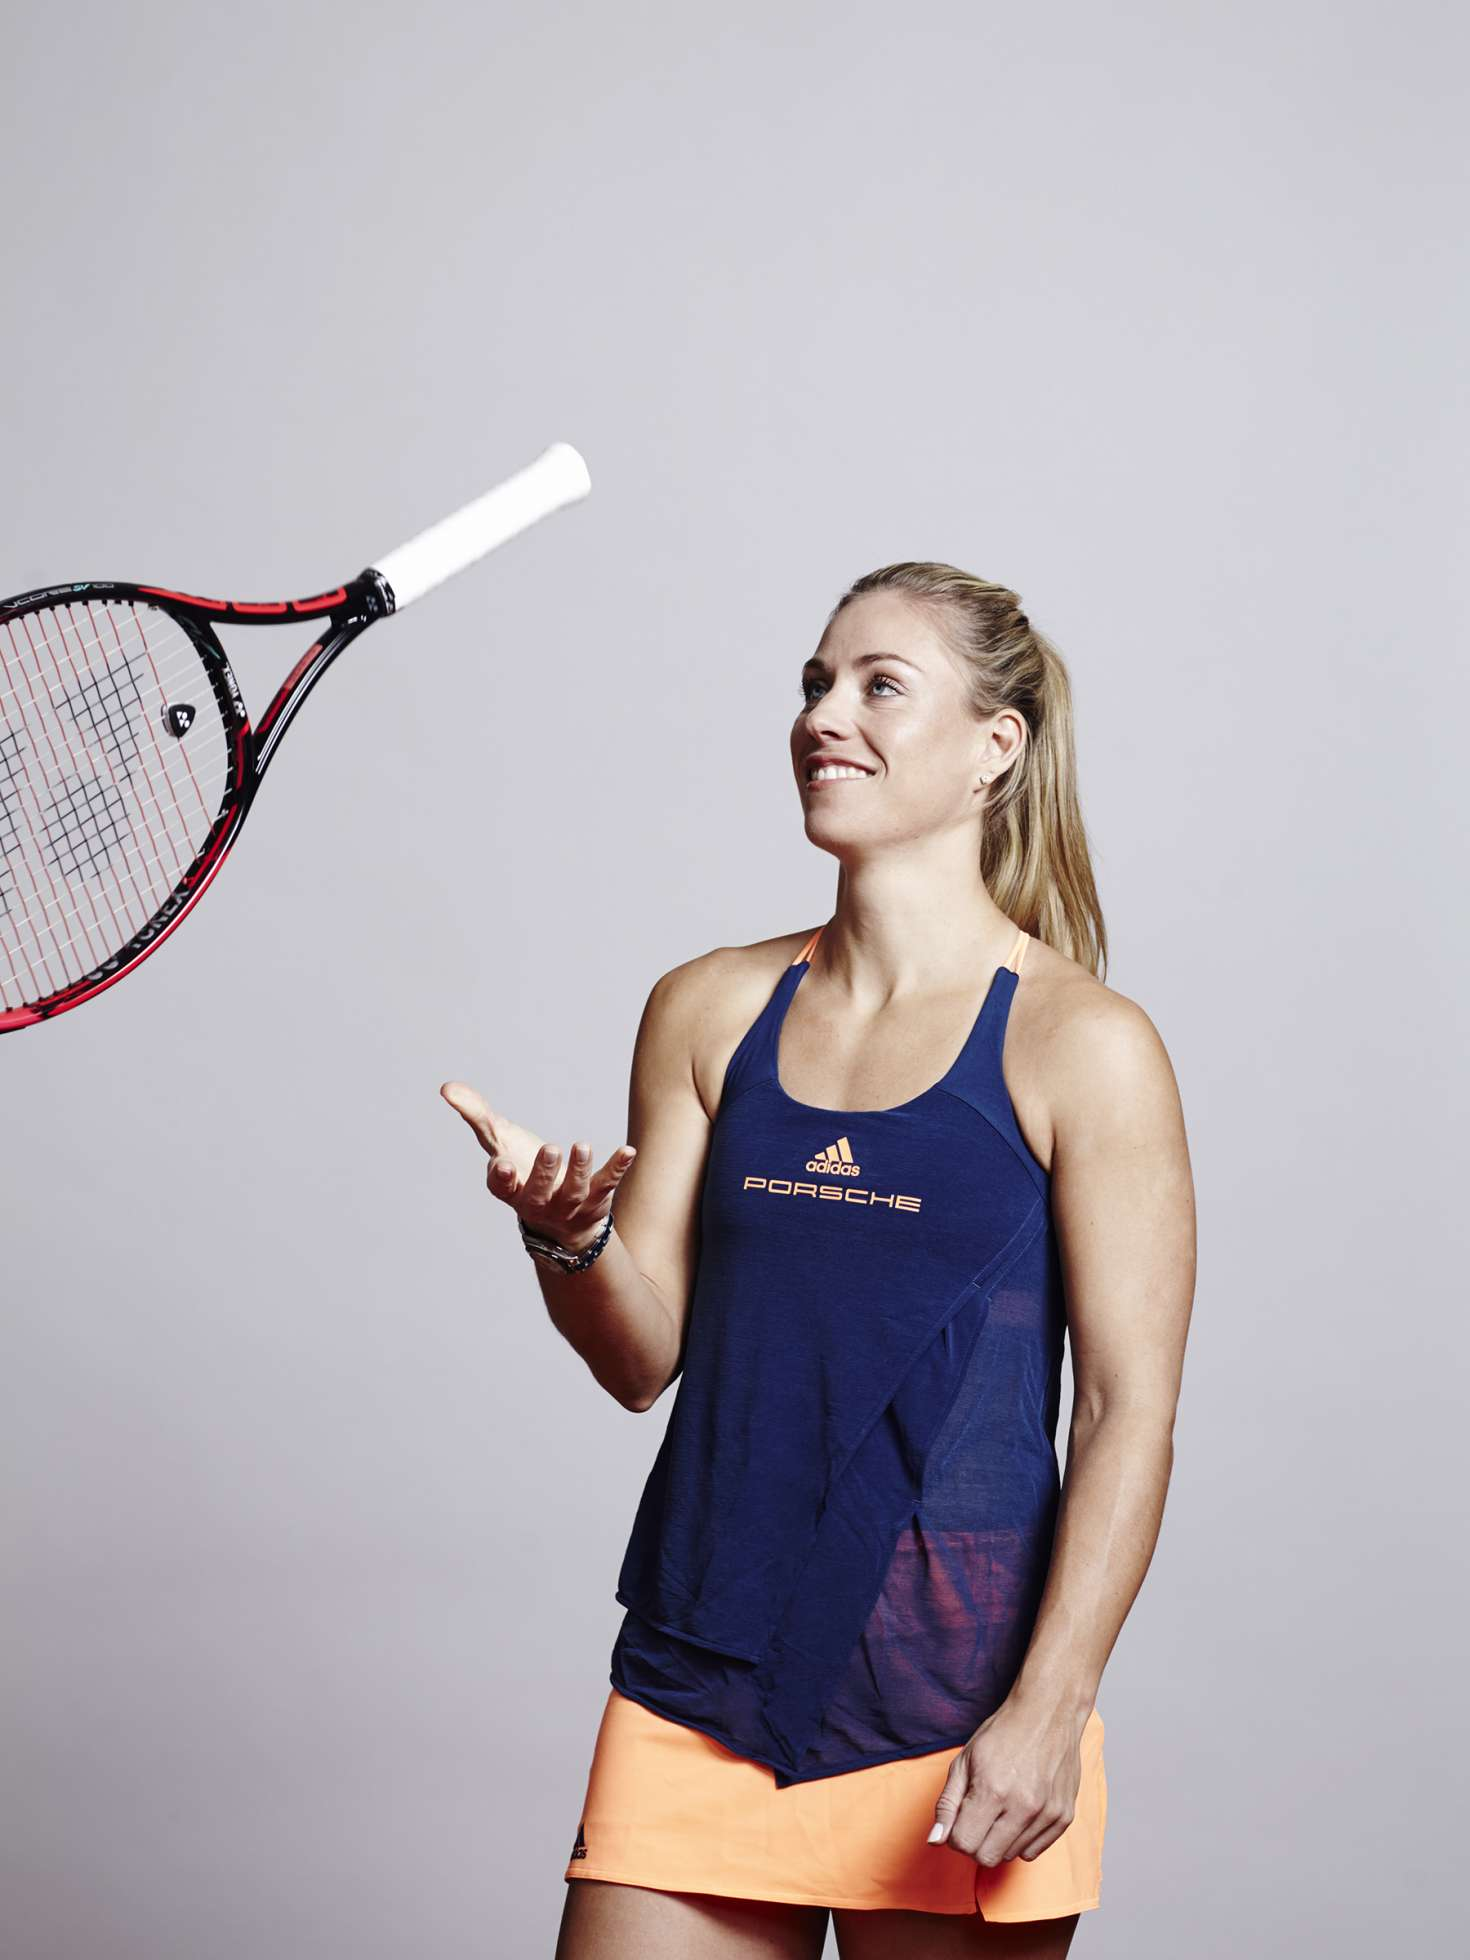 angelique kerber � photoshoot for the porsche tennis